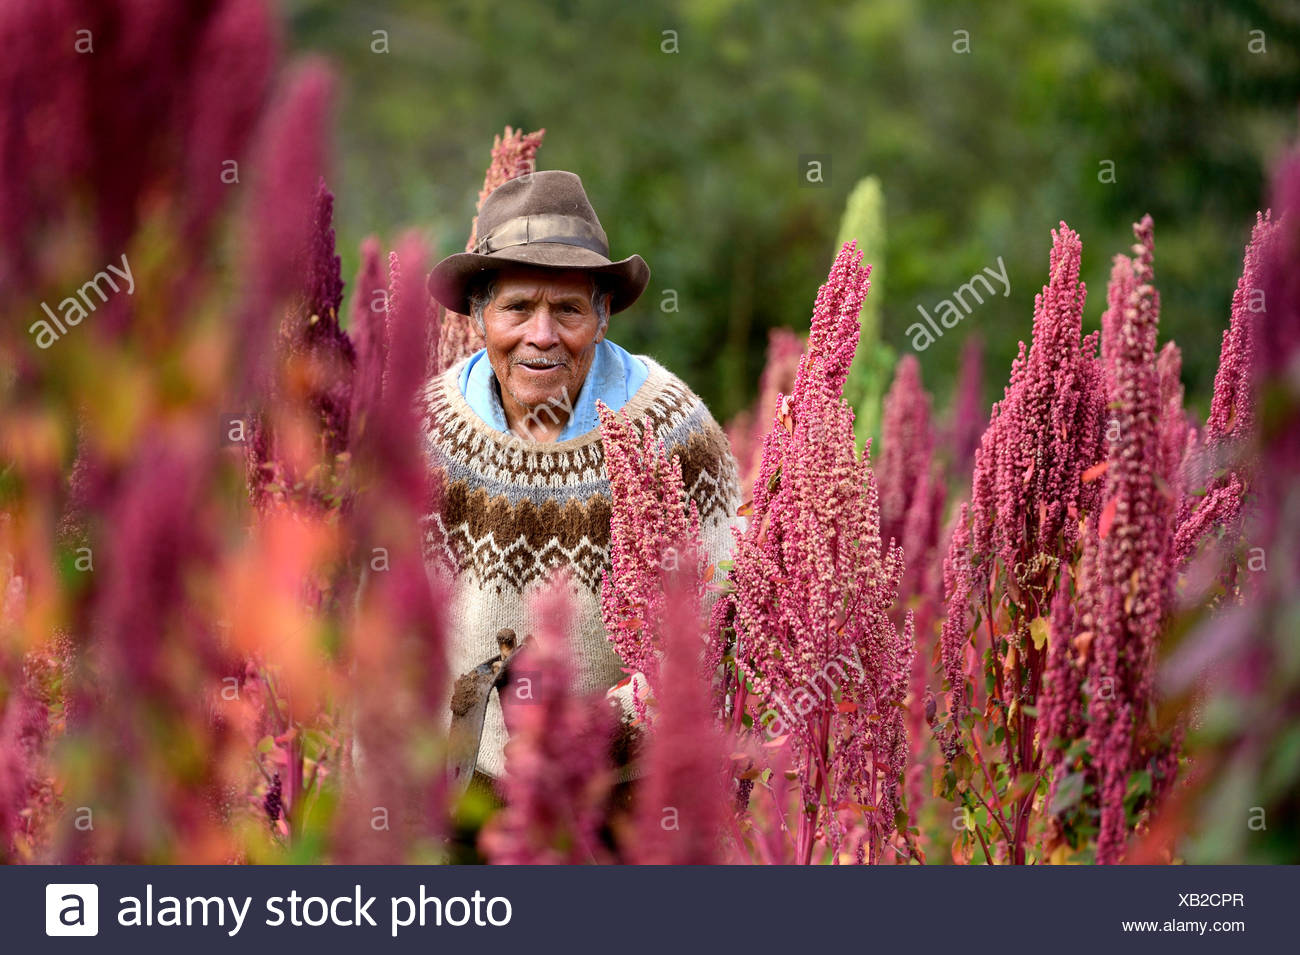 Elderly man, farmer, on a Quinoa field (Chenopodium quinoa), Quivilla, Huanuco Province, Peru - Stock Image